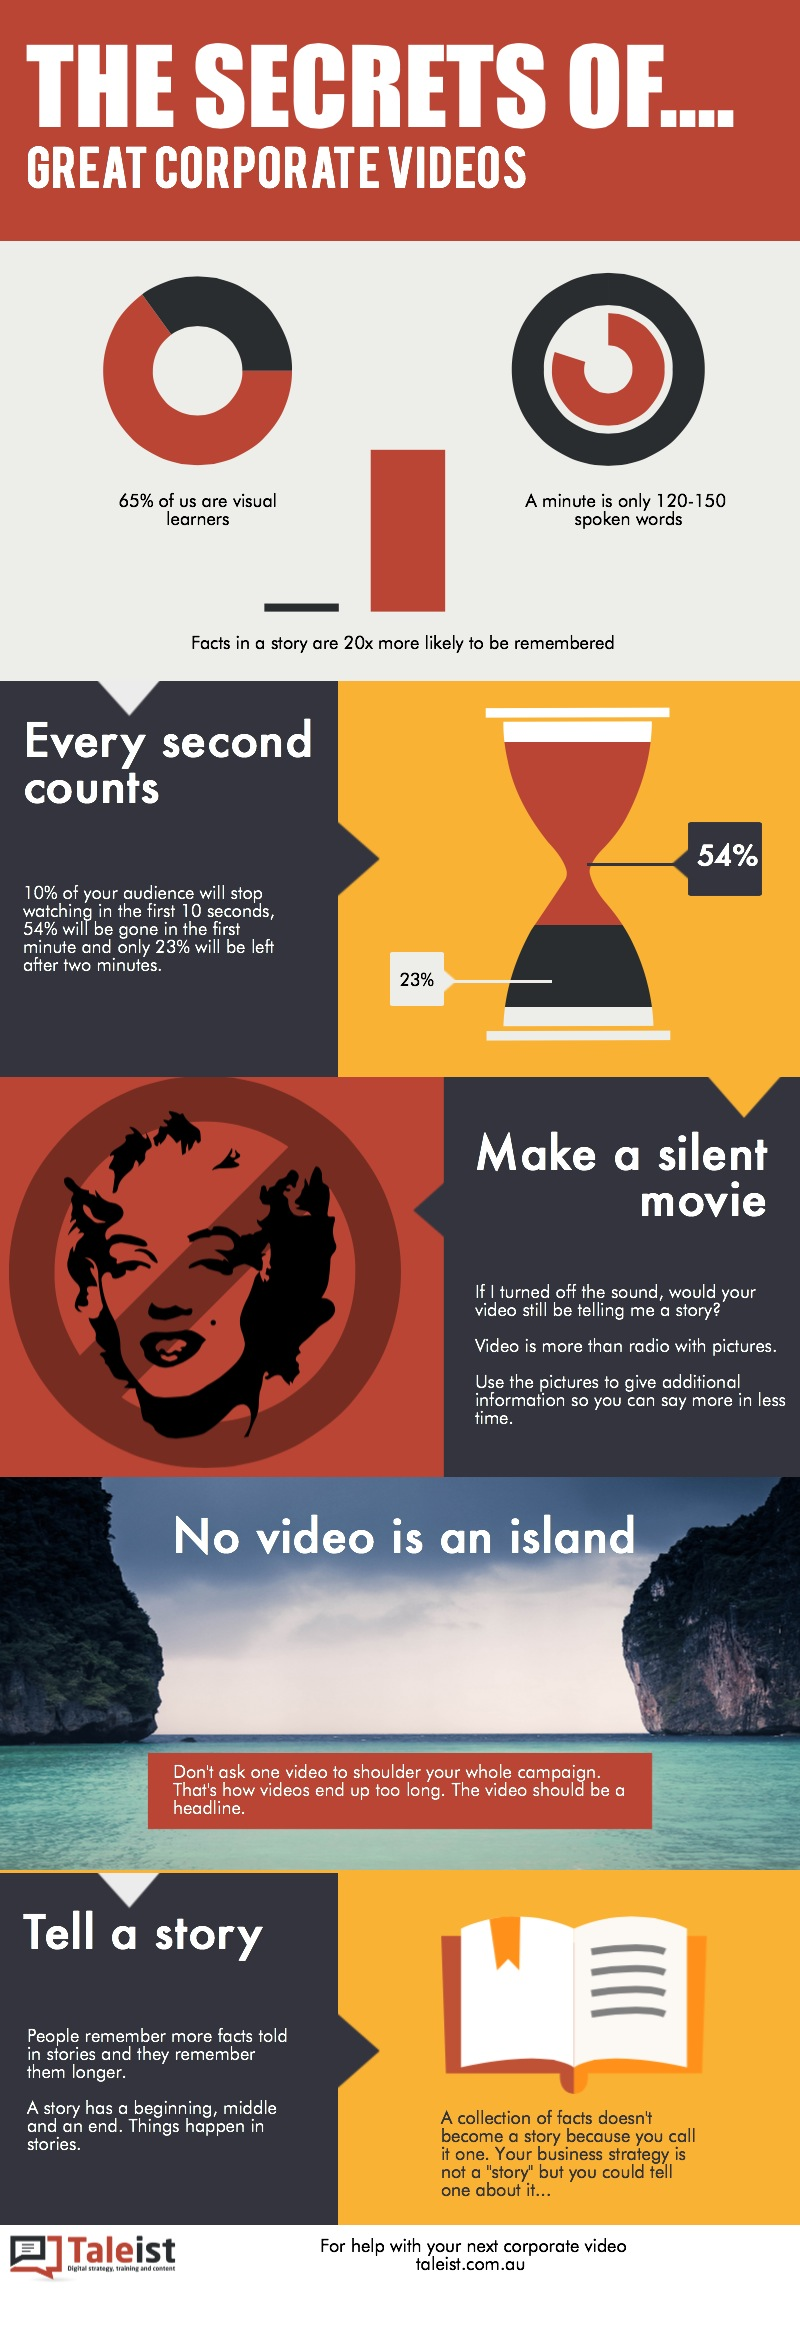 The ingredients of a great corporate video